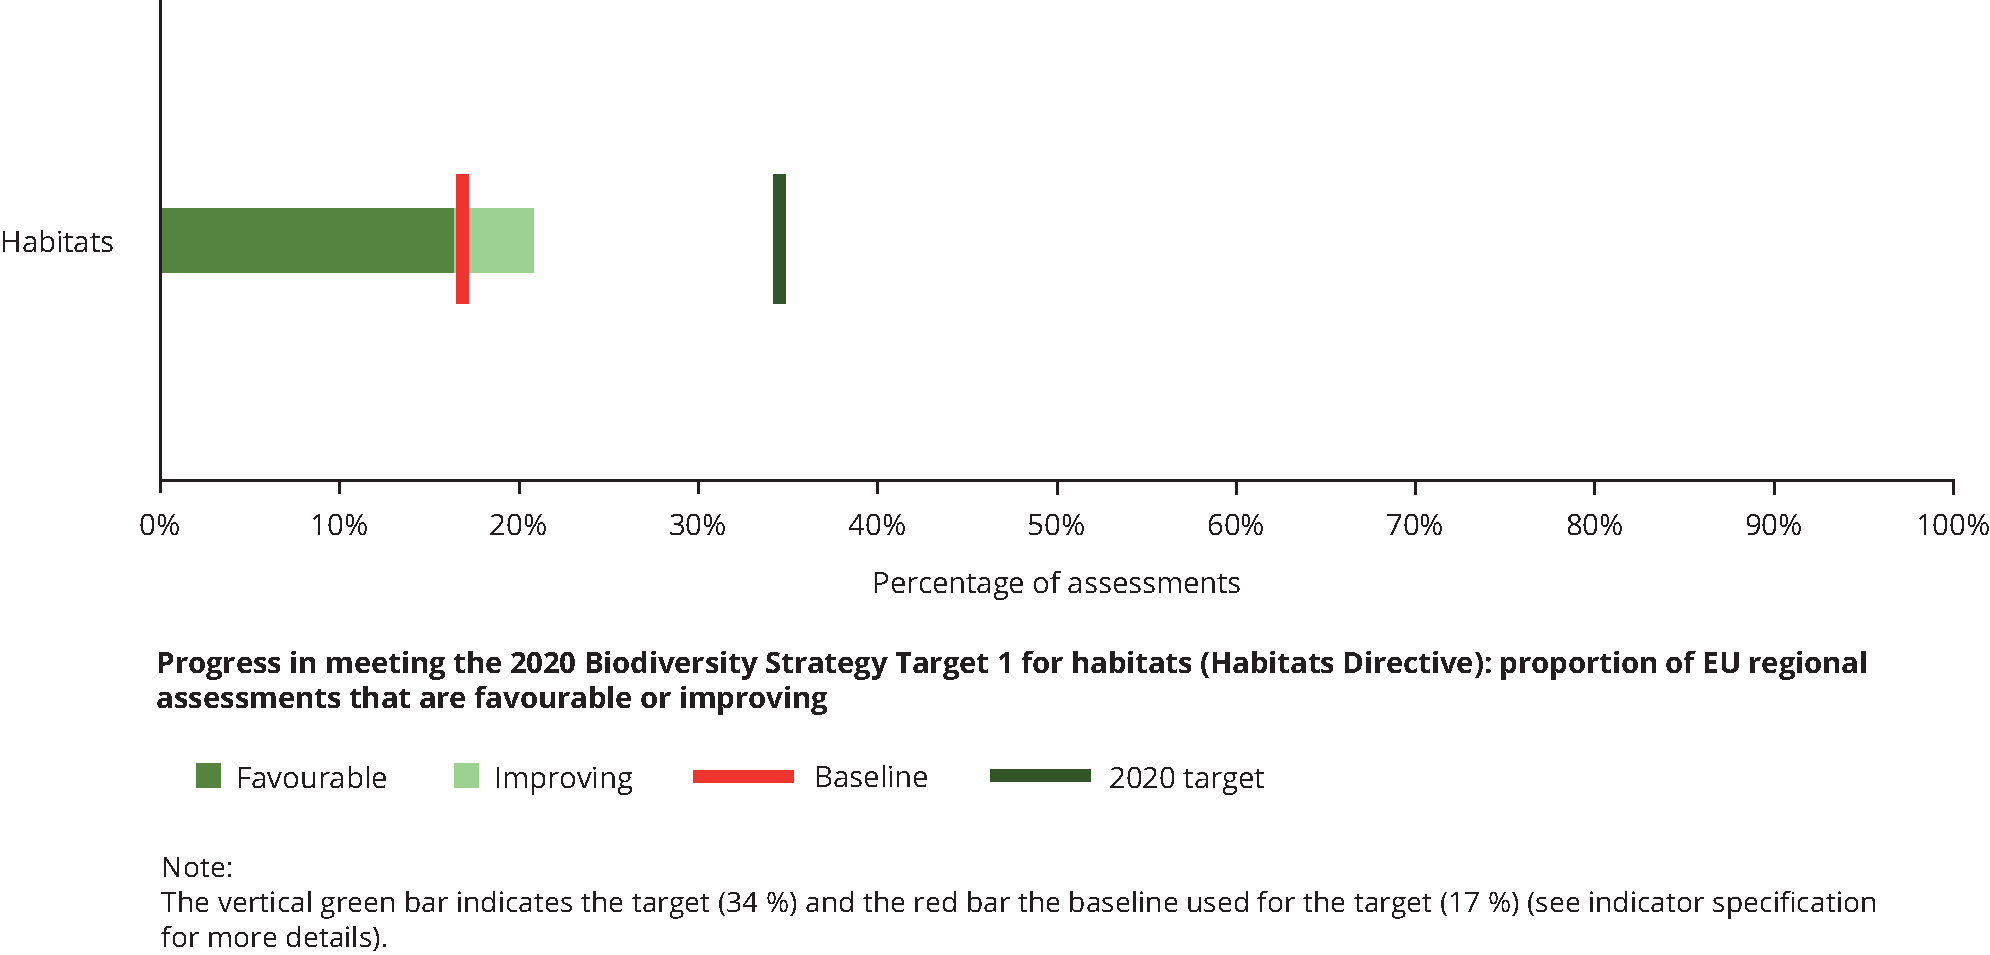 Progress in meeting the 2020 Biodiversity Strategy Target 1 for habitats (Habitats Directive): proportion of EU regional assessments that are favourable or improving